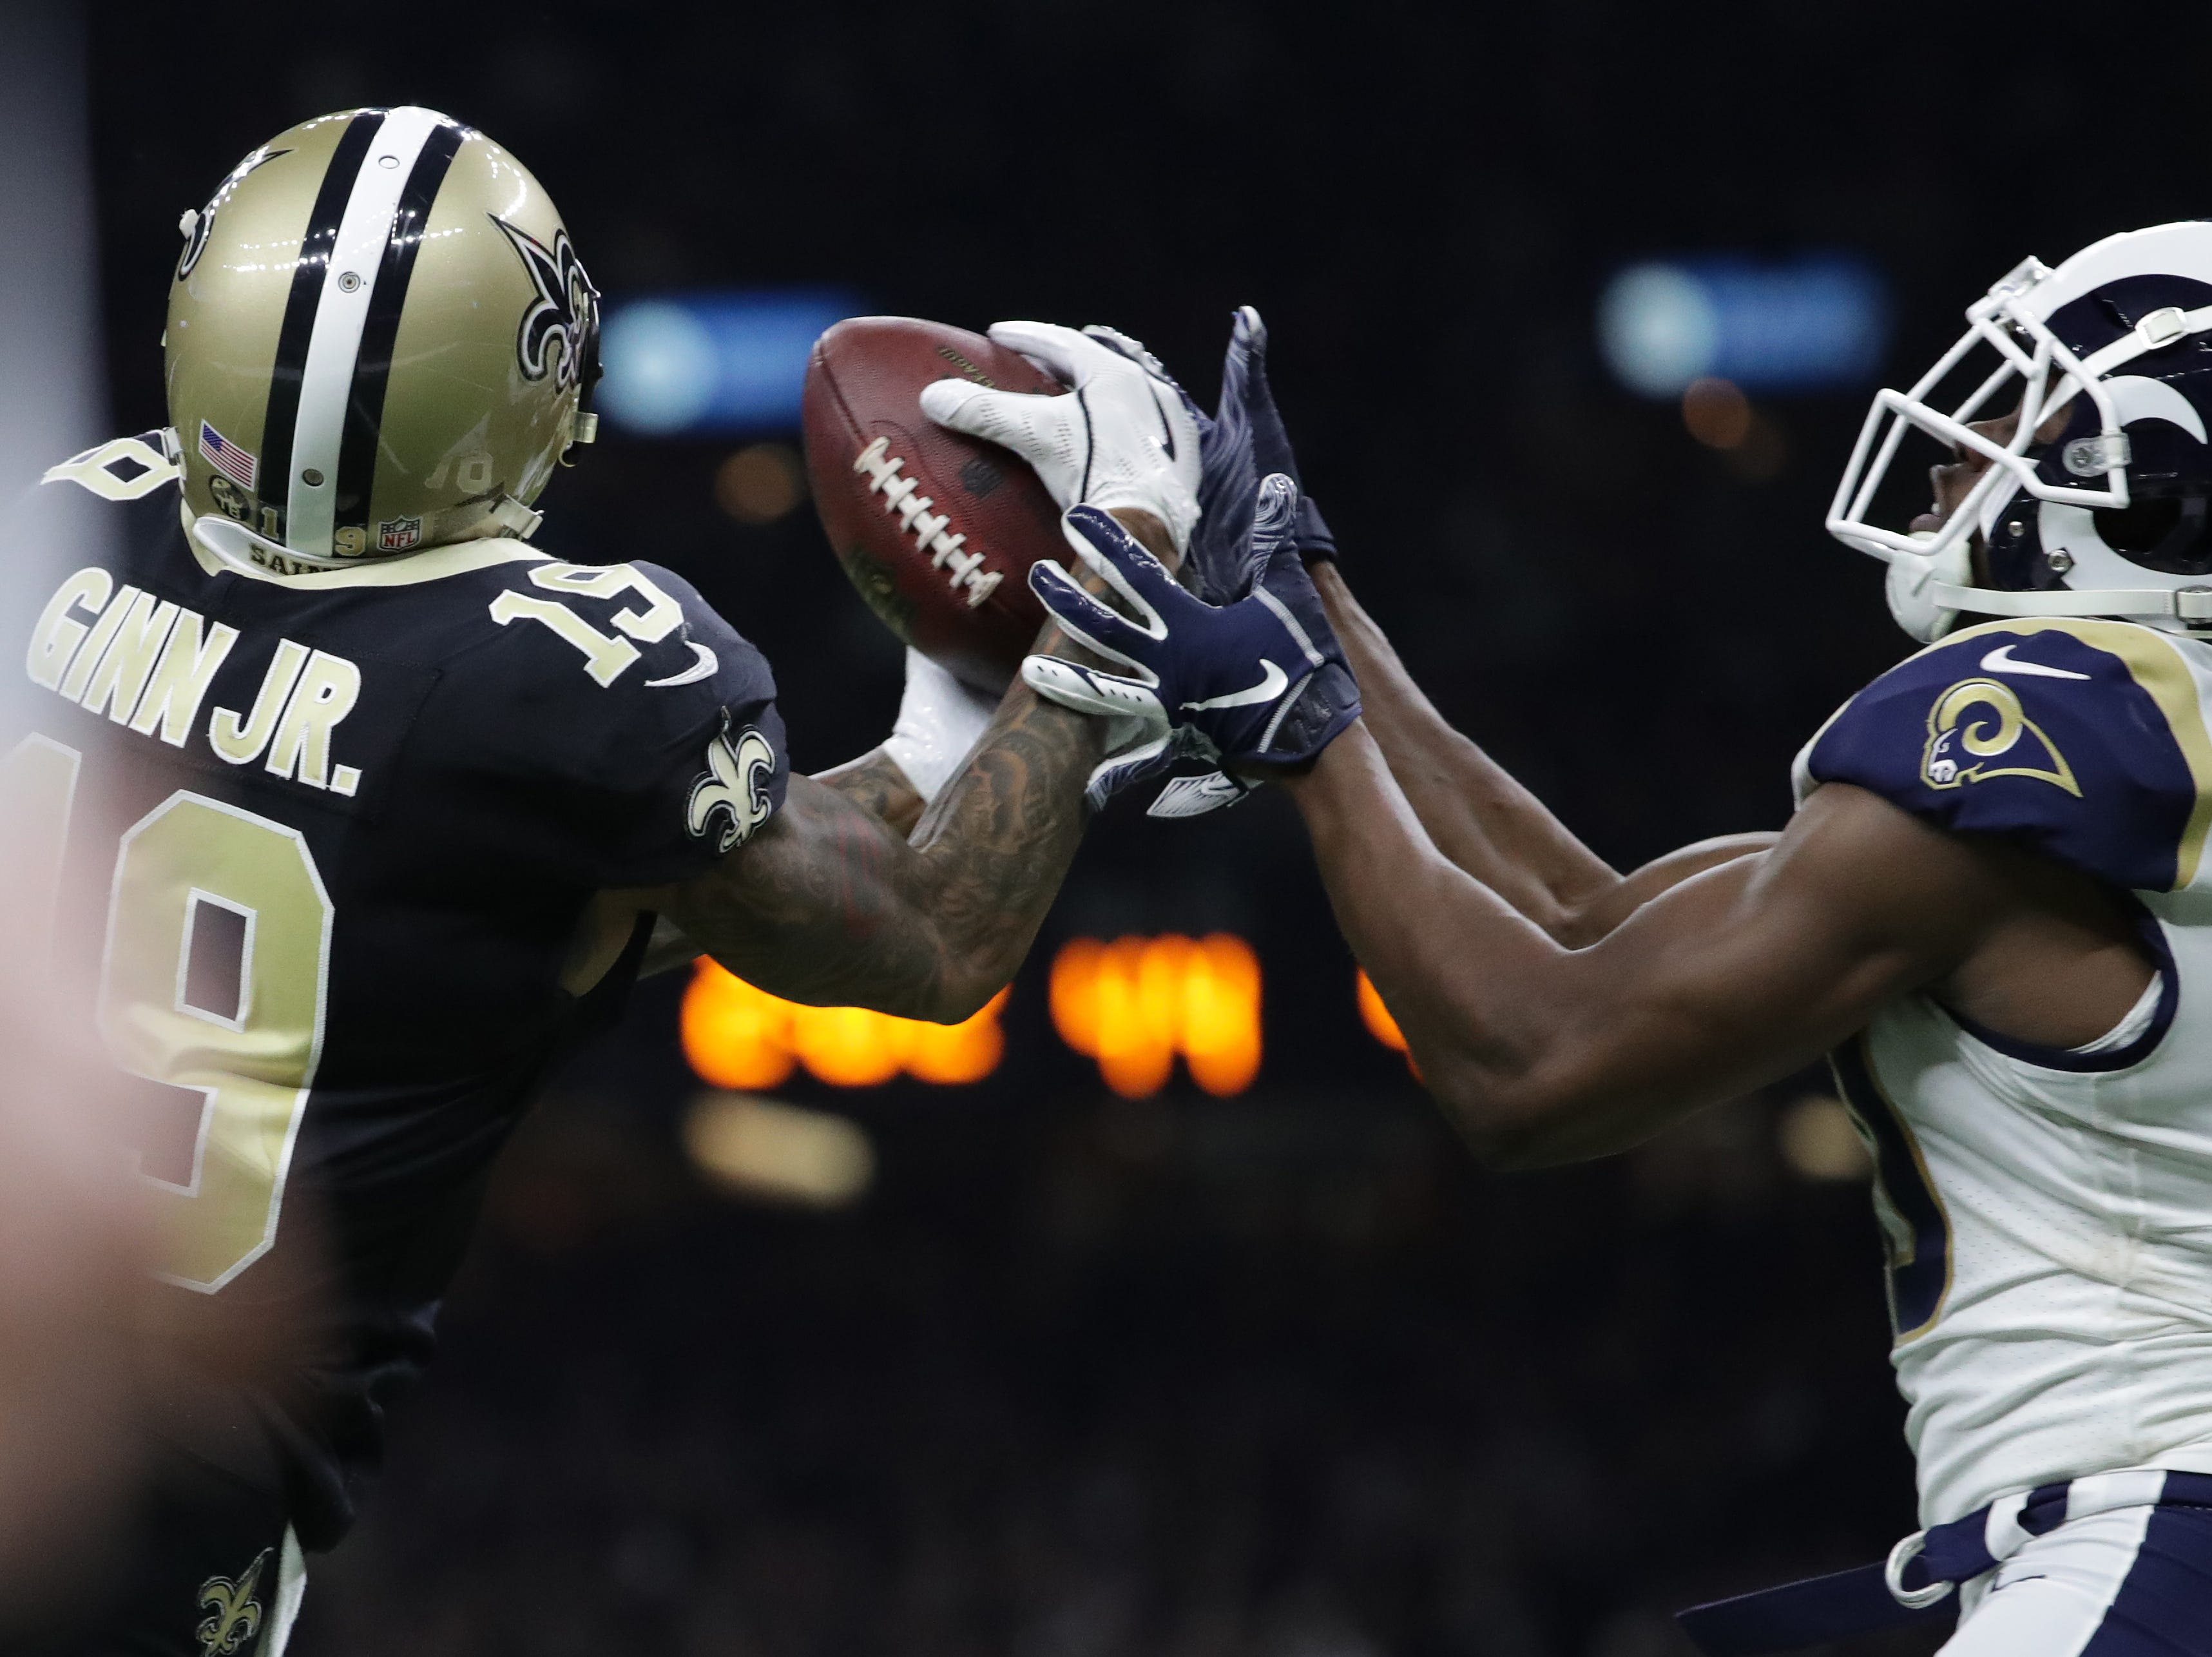 Jan 20, 2019; New Orleans, LA, USA; New Orleans Saints wide receiver Ted Ginn (19) catches a pass against Los Angeles Rams free safety Lamarcus Joyner (20) during the fourth quarter of the NFC Championship game at Mercedes-Benz Superdome. Mandatory Credit: Derick E. Hingle-USA TODAY Sports